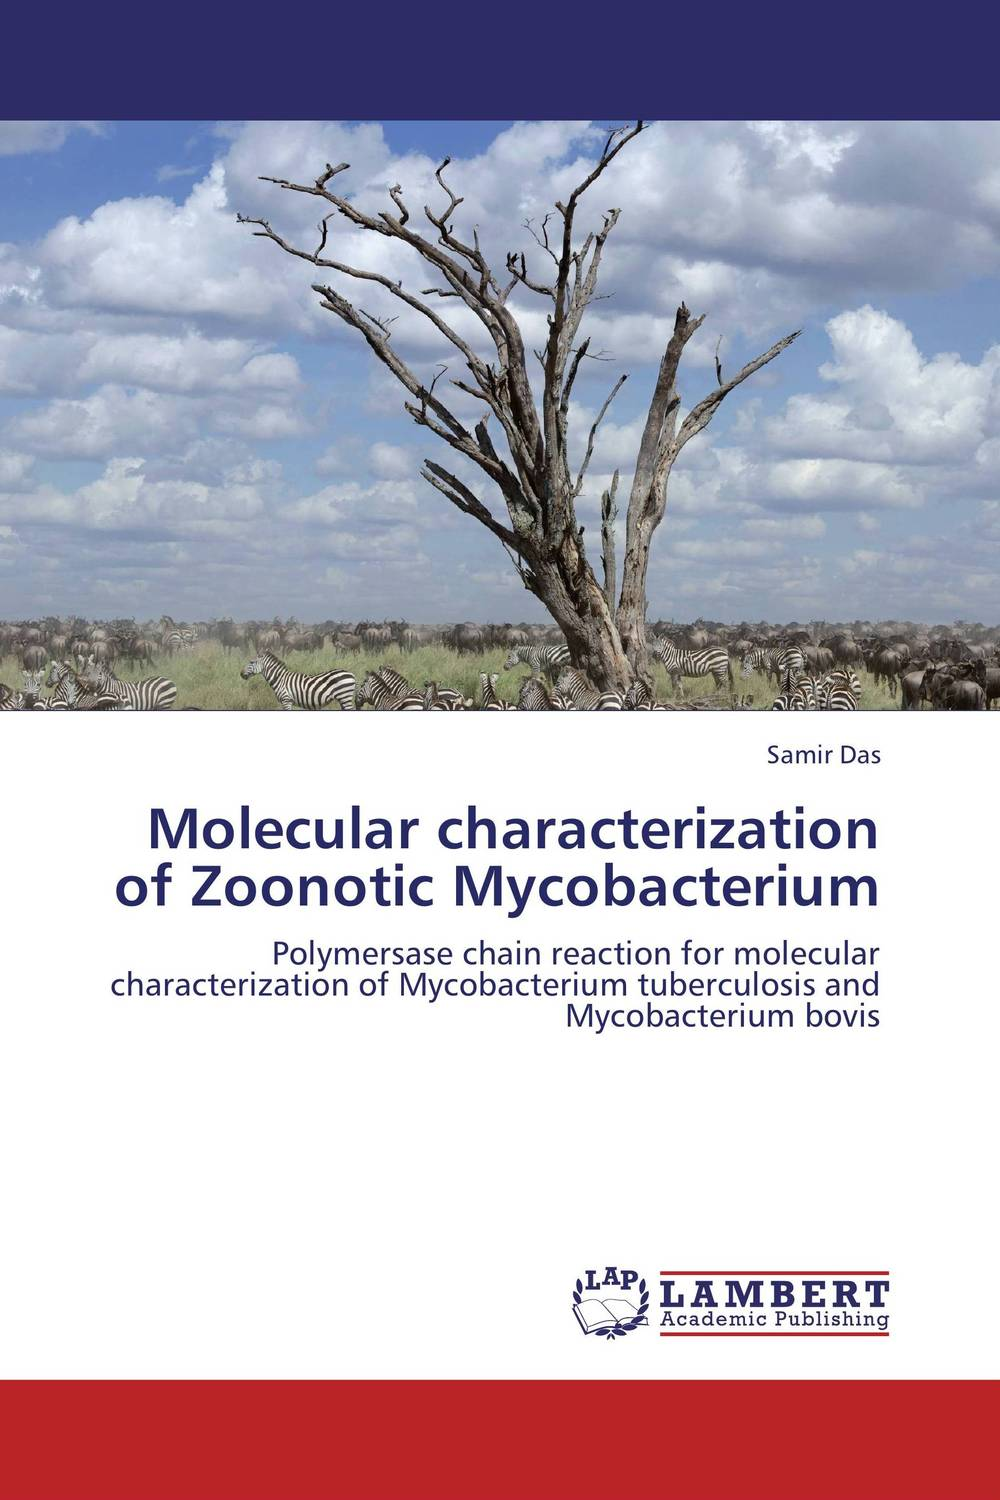 Molecular characterization of Zoonotic Mycobacterium anil arjun hake sanjay jha and suman kumar jha molecular and biochemical characterization of karanja derris indica